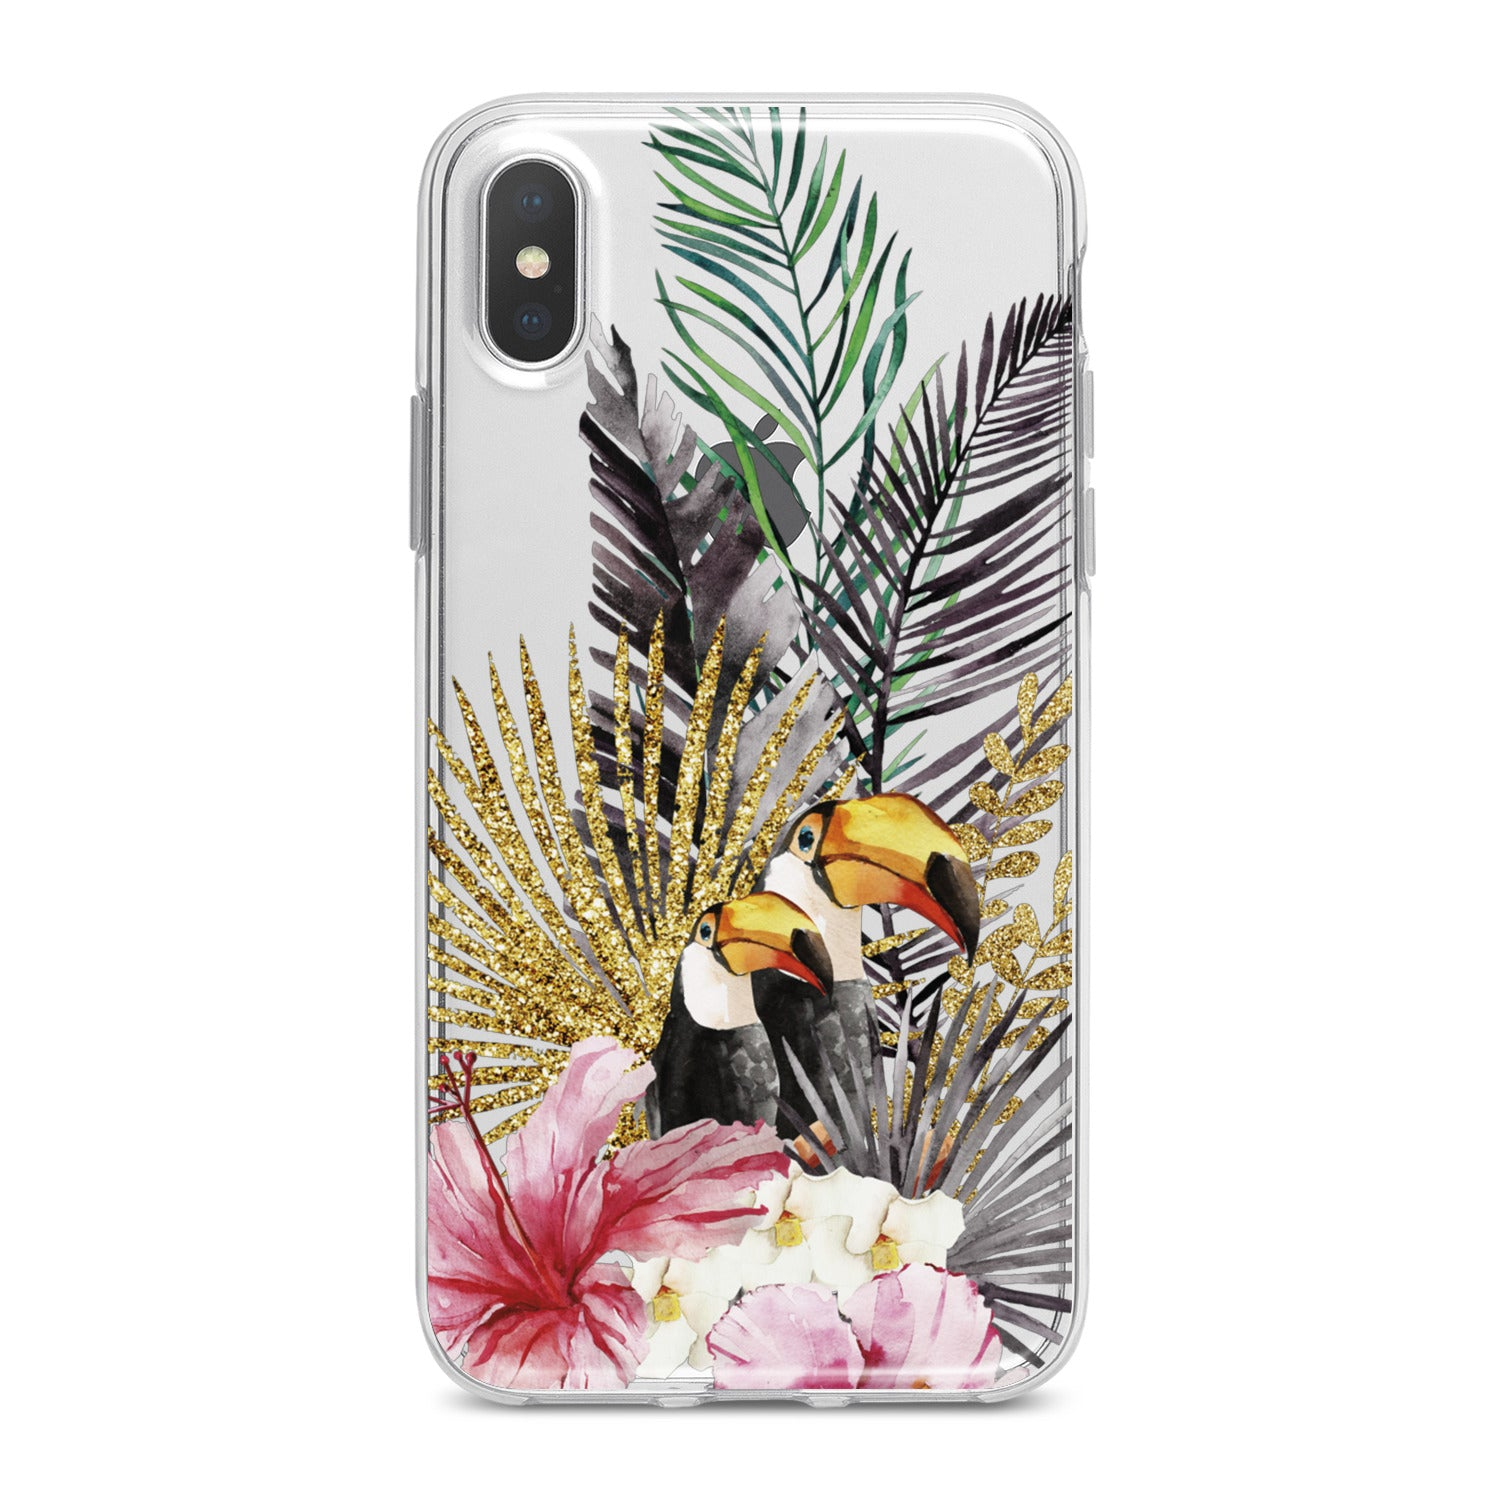 Lex Altern Tropical Birds Theme Phone Case for your iPhone & Android phone.